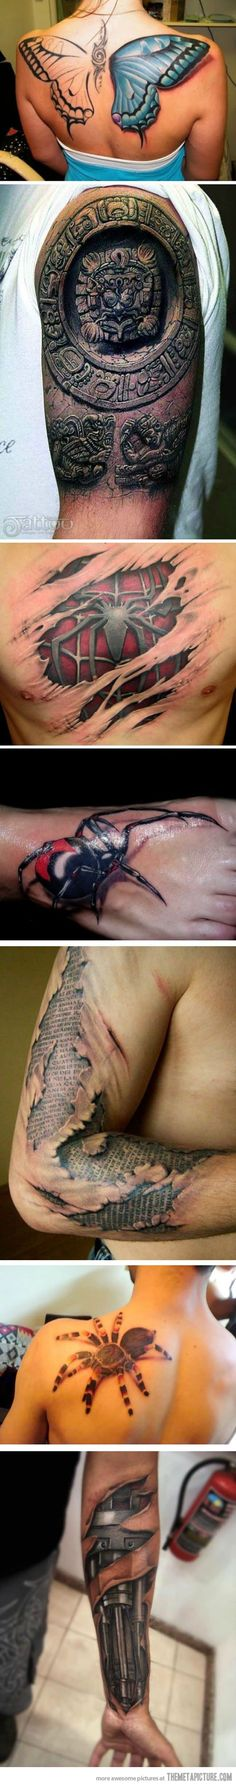 Some of the best 3D tattoos…